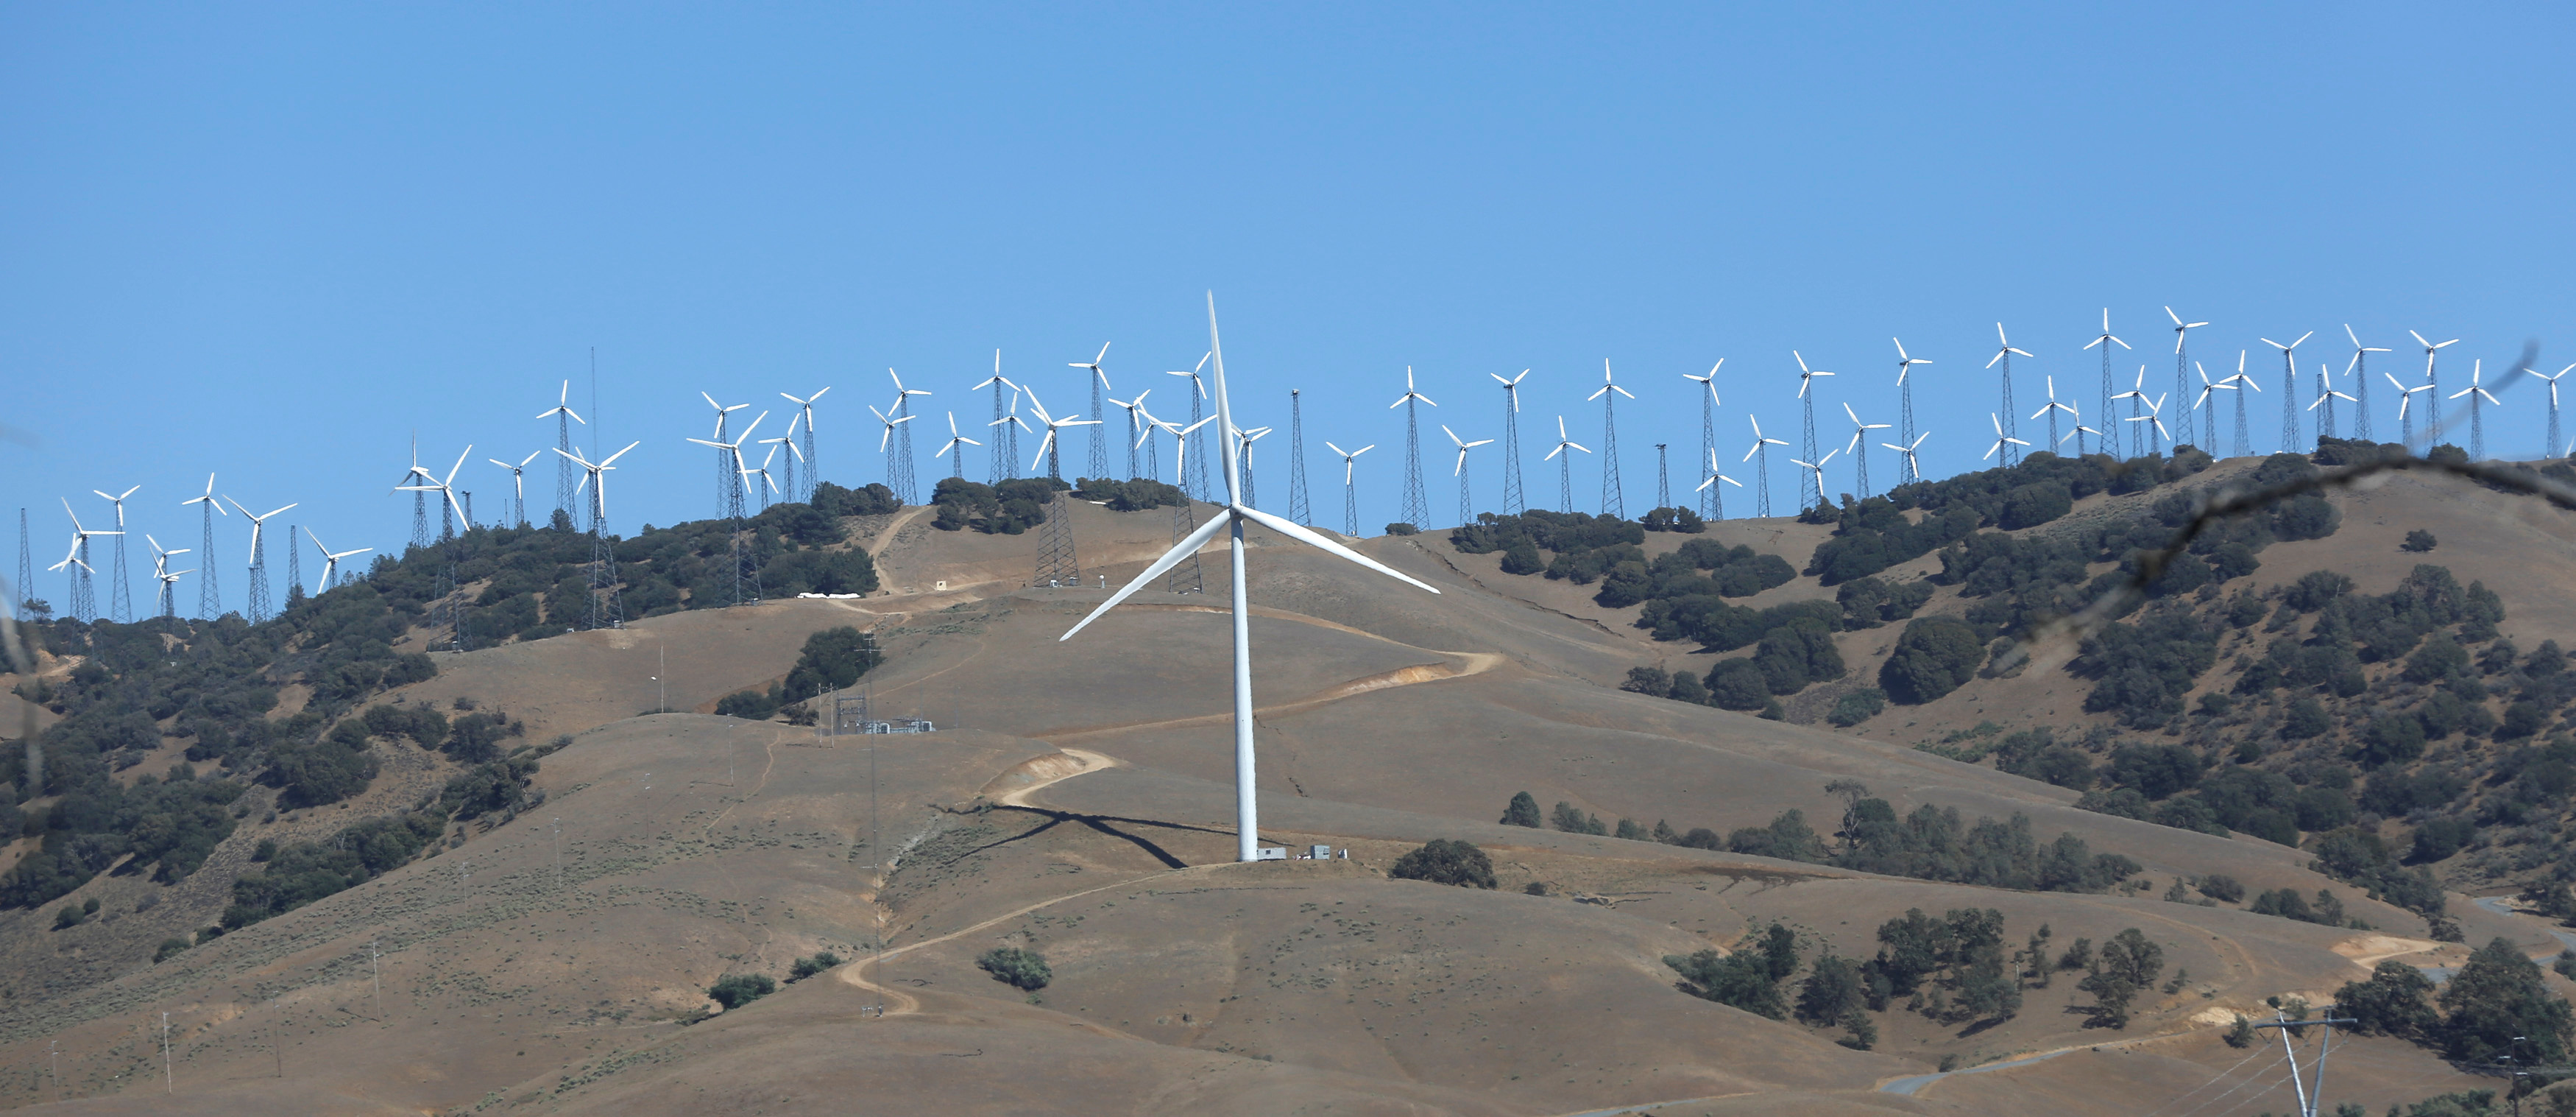 A GE 1.6-100 wind turbine is pictured at a wind farm in Tehachapi